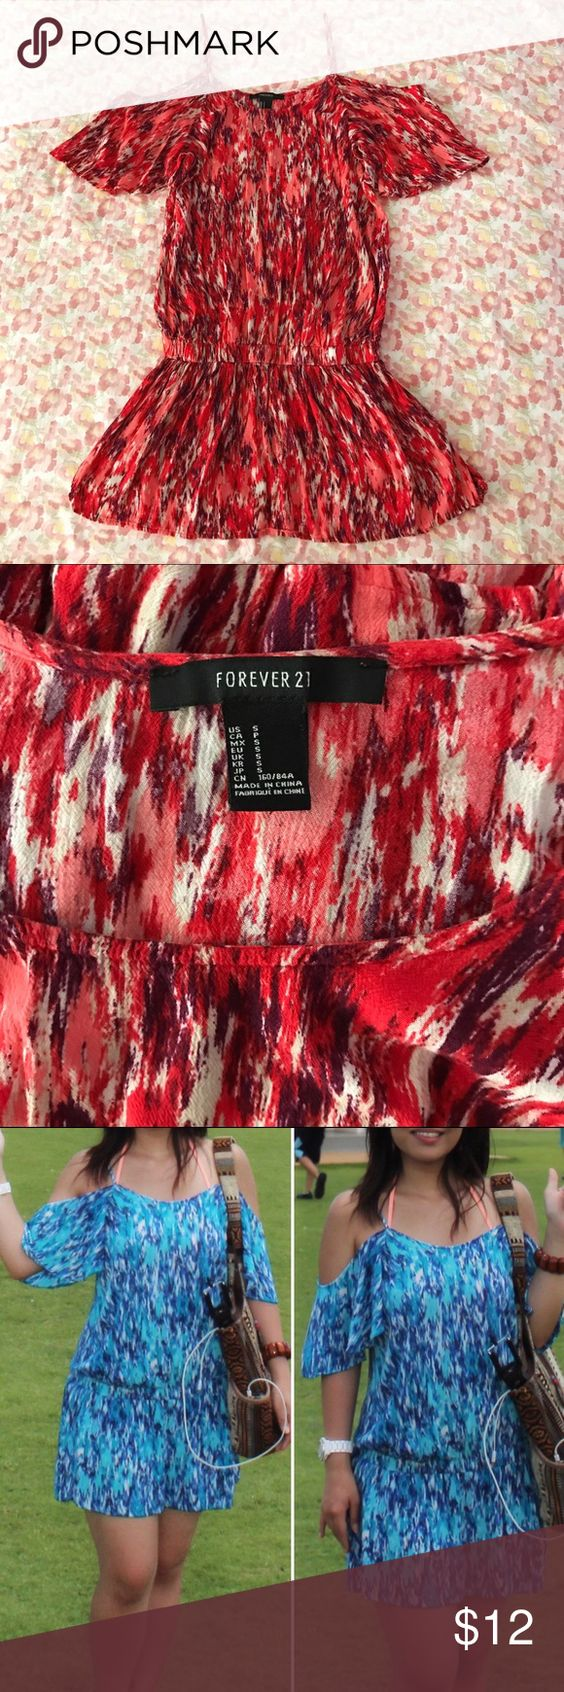 """F21 red beach tunic dress Size S (juniors 3-5, woman's 0-2) • 100% rayon • Gently worn & in excellent condition • Beautiful mix of red, purple, & white textured print, elastic at the waist, flowy cap sleeves, adjustable spaghetti straps • Reference: I'm 5'1"""" in the photo & wearing the exact same item in blue. Any questions, just ask! 👍🏻 Forever 21 Tops Tunics"""